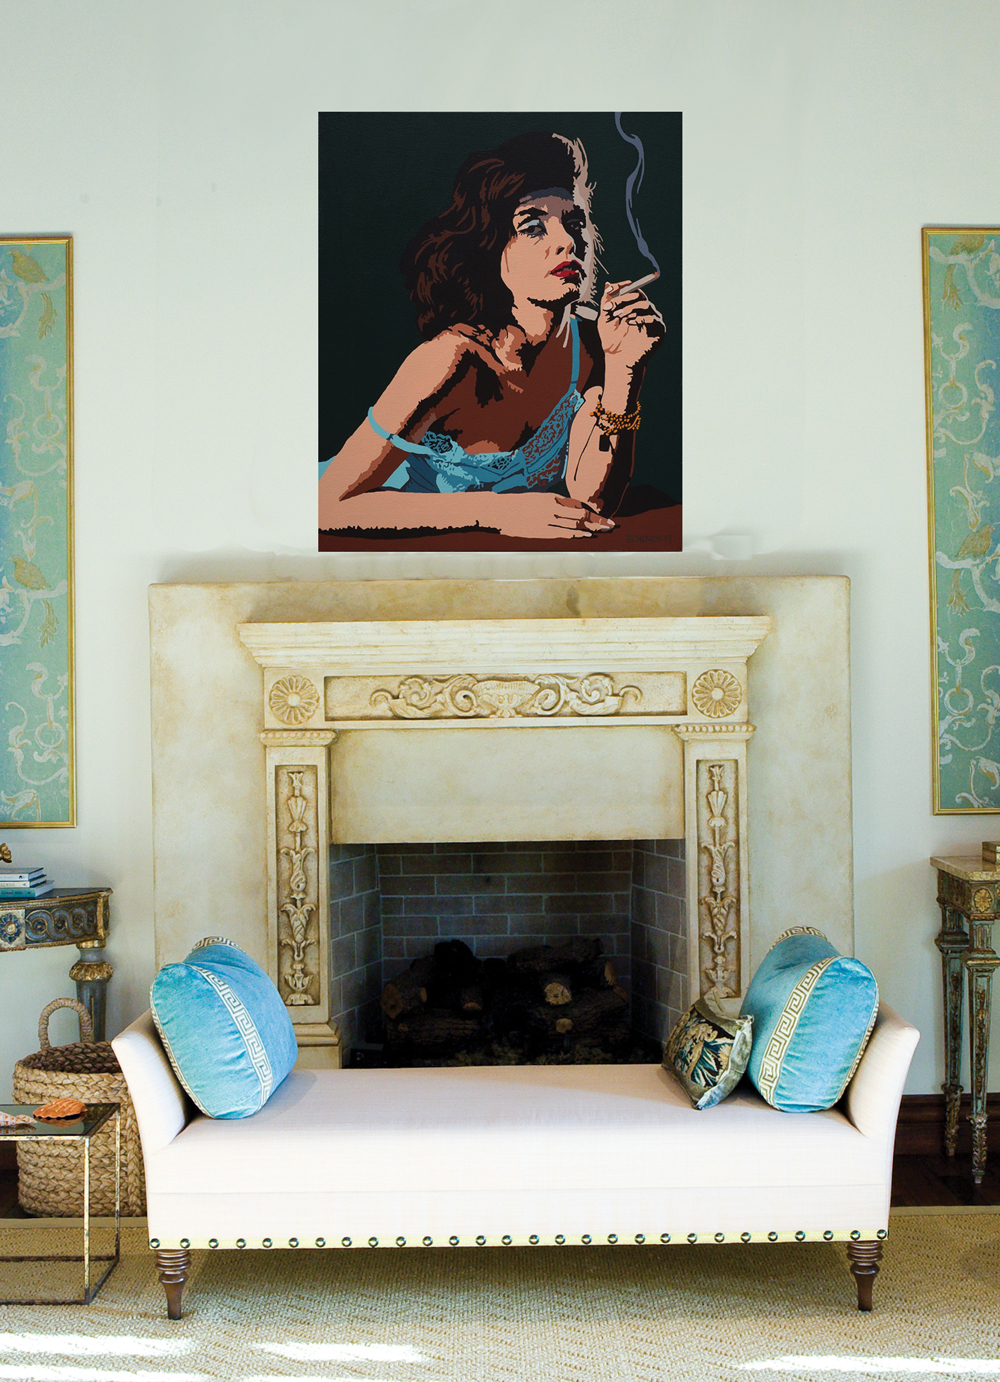 not sure how a painting will look in your house the artcloud app